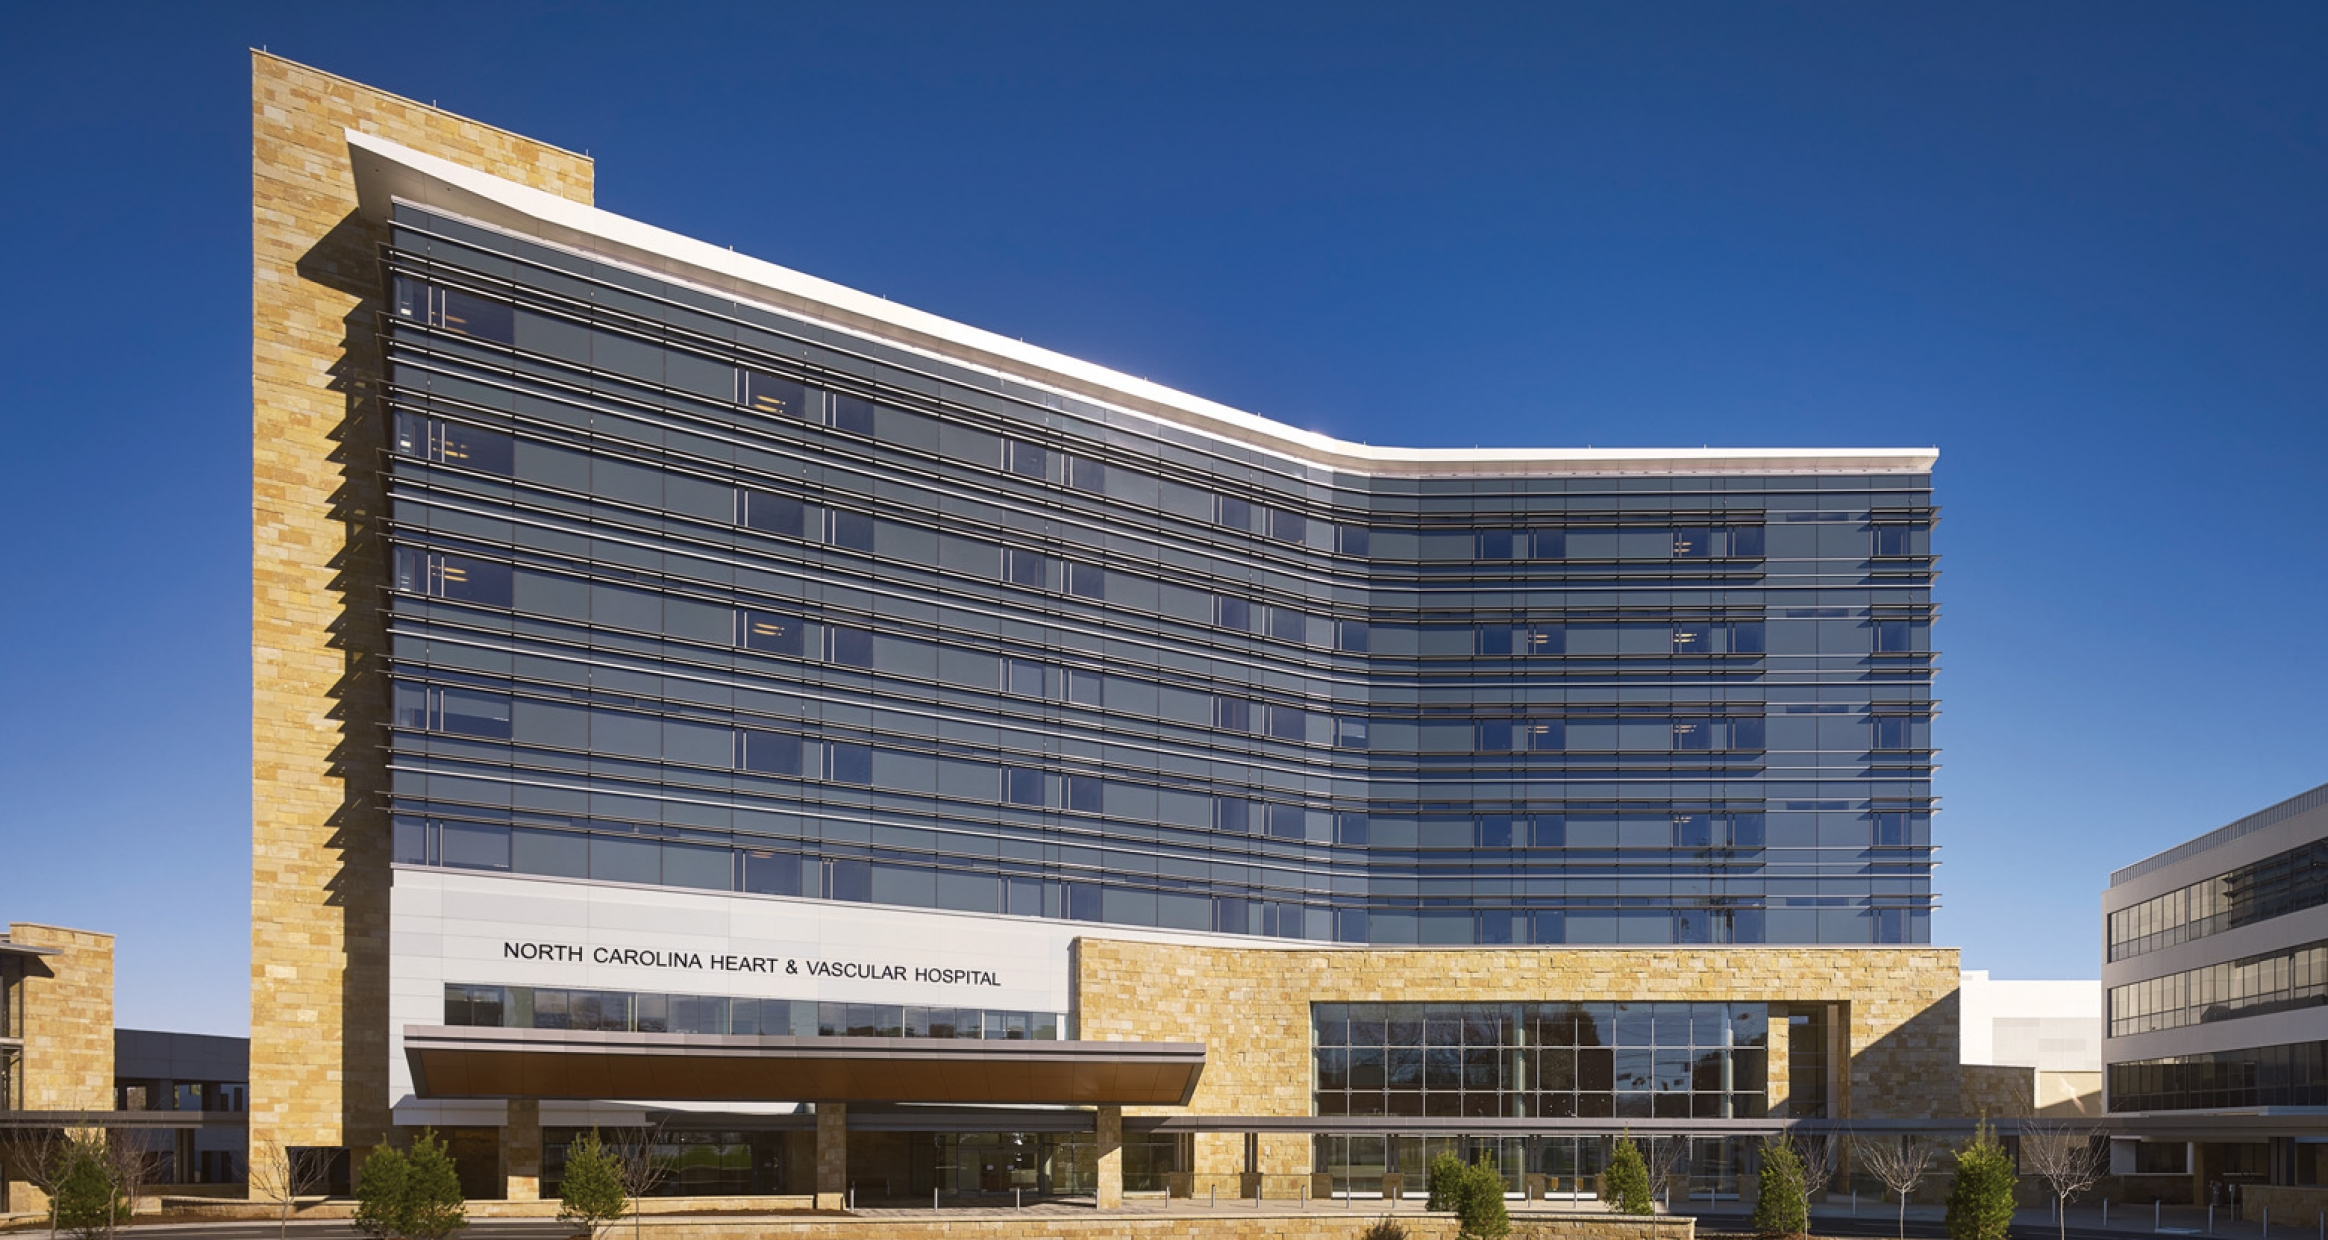 UNC Health North Carolina Heart & Vascular Hospital